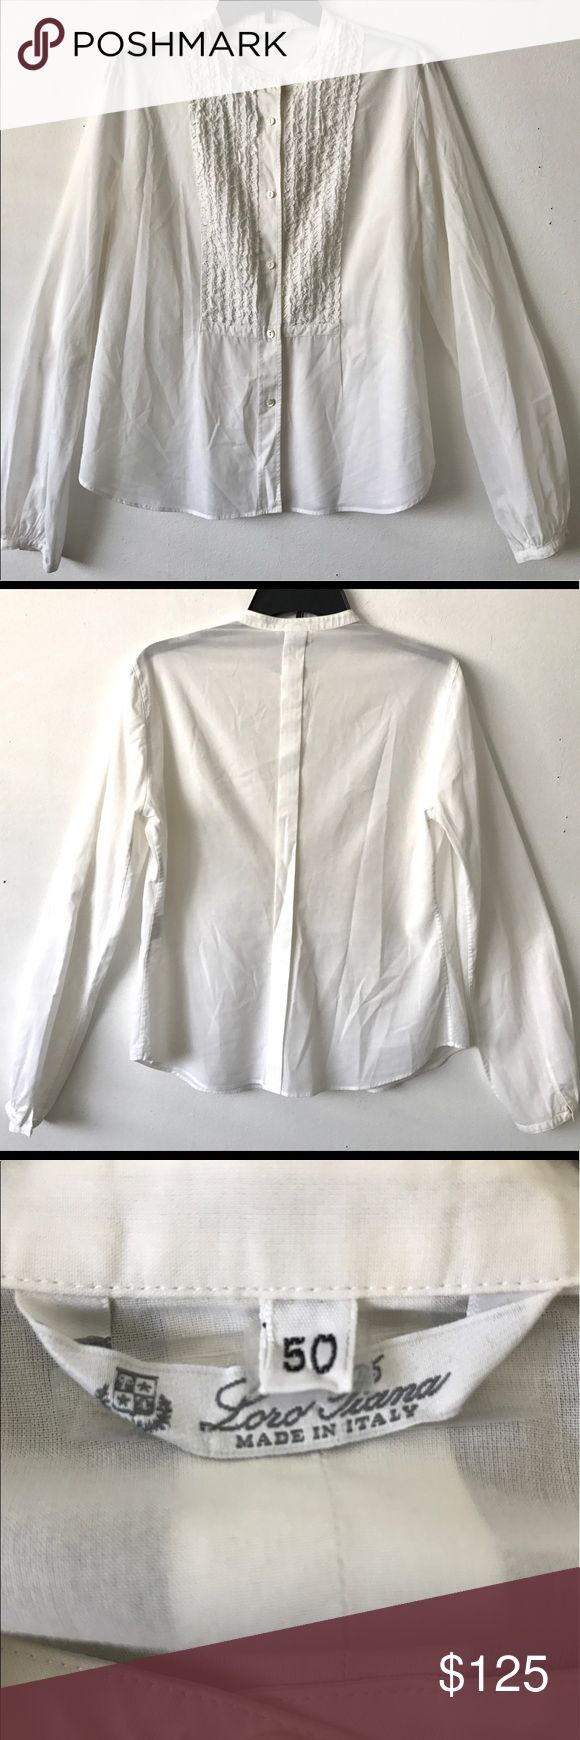 "Loro Piana Cotton Poplin Pintuck Tuxedo Blouse Excellent condition Loro Piana white cotton poplin Tuxedo Blouse with a pintuck ruffle bib. Button Front, Mandarin Collar, button cuffs. 100% fresh soft cotton. Made in Italy. No rips, tears, holes or stains! Tiny pinhole from price tag on Sleeve- see photo. Size 50IT. Retail $995 20.5"" armpit to armpit, 16"" across back, 25"" length Loro Piana Tops Blouses"